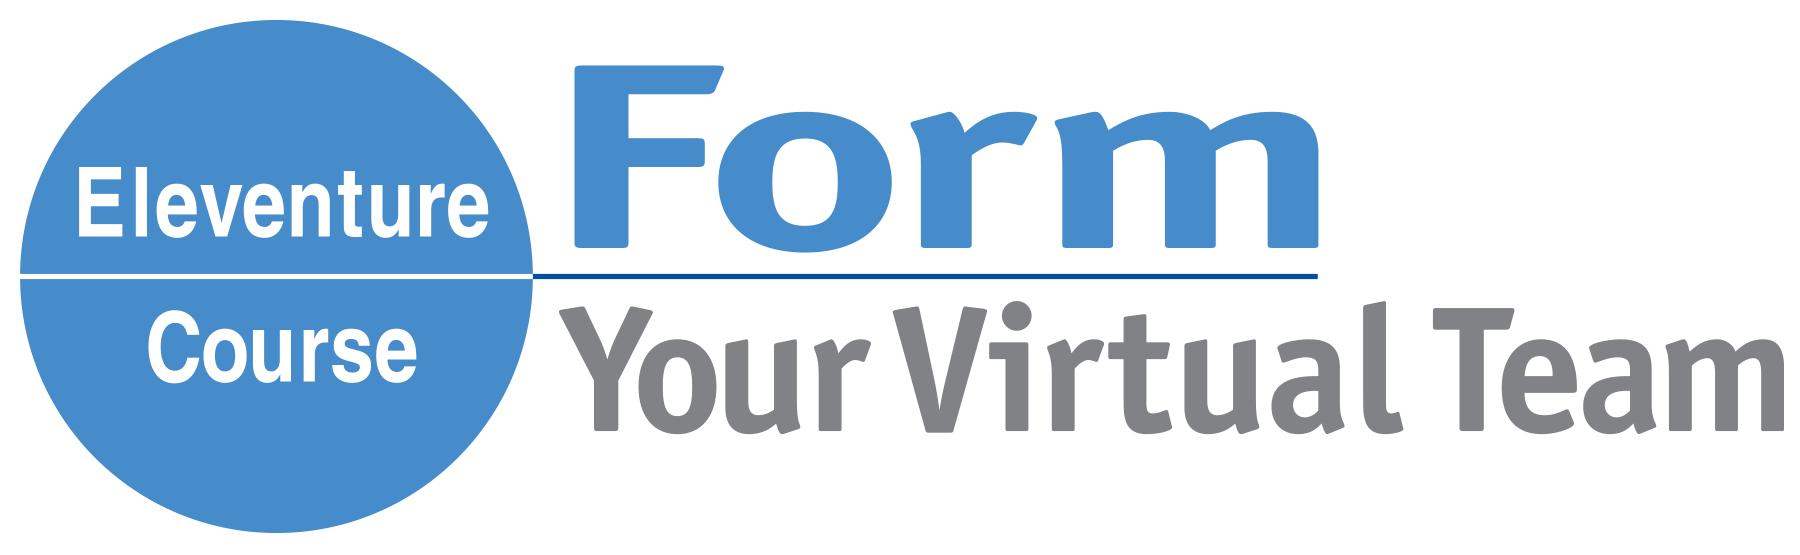 Eleventure: Form Your Virtual Team